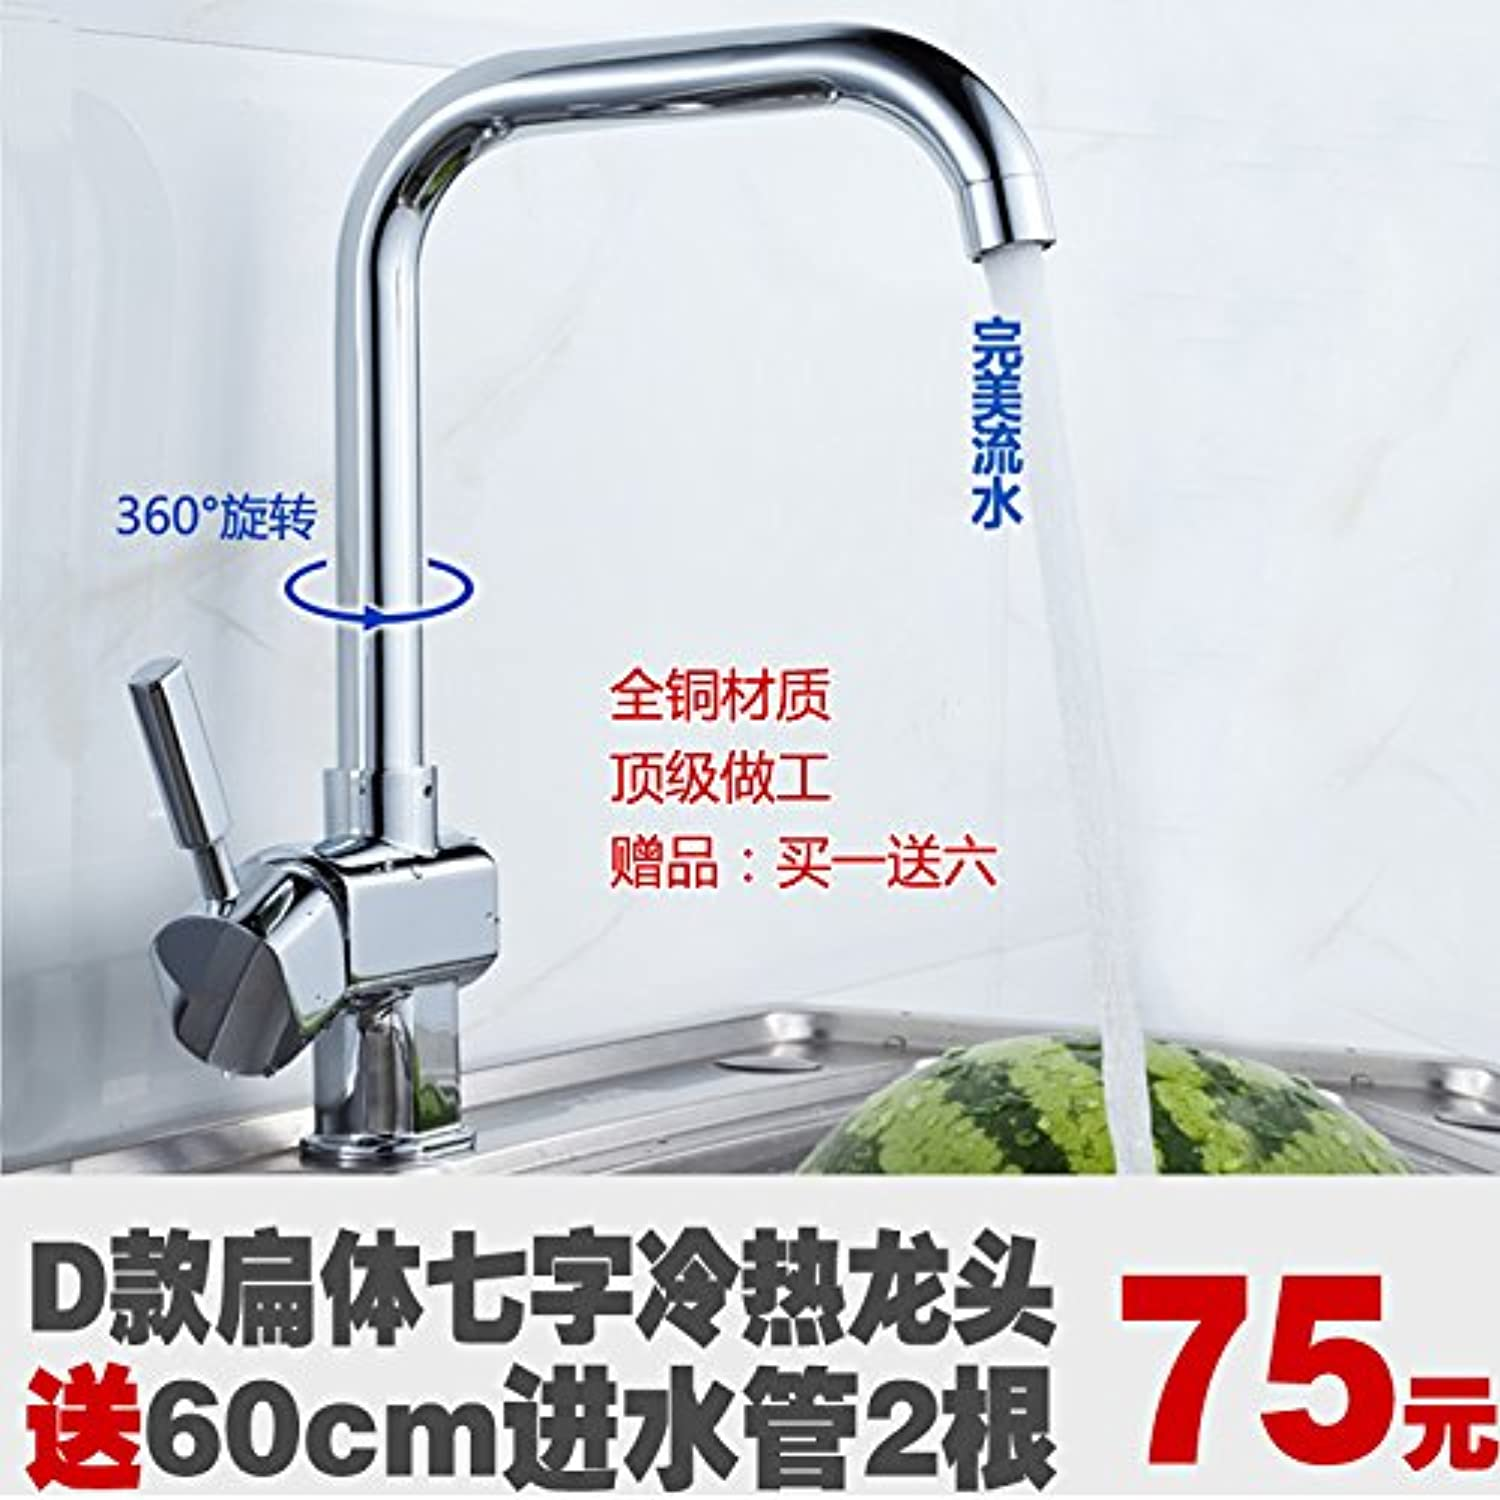 NewBorn Faucet Kitchen Or Bathroom Sink Mixer Tap Water Tap Water Tap Hot And Cold Dish Washing Water Tap To redate The Water Tap Full Copper Hot And Cold 7 Field D